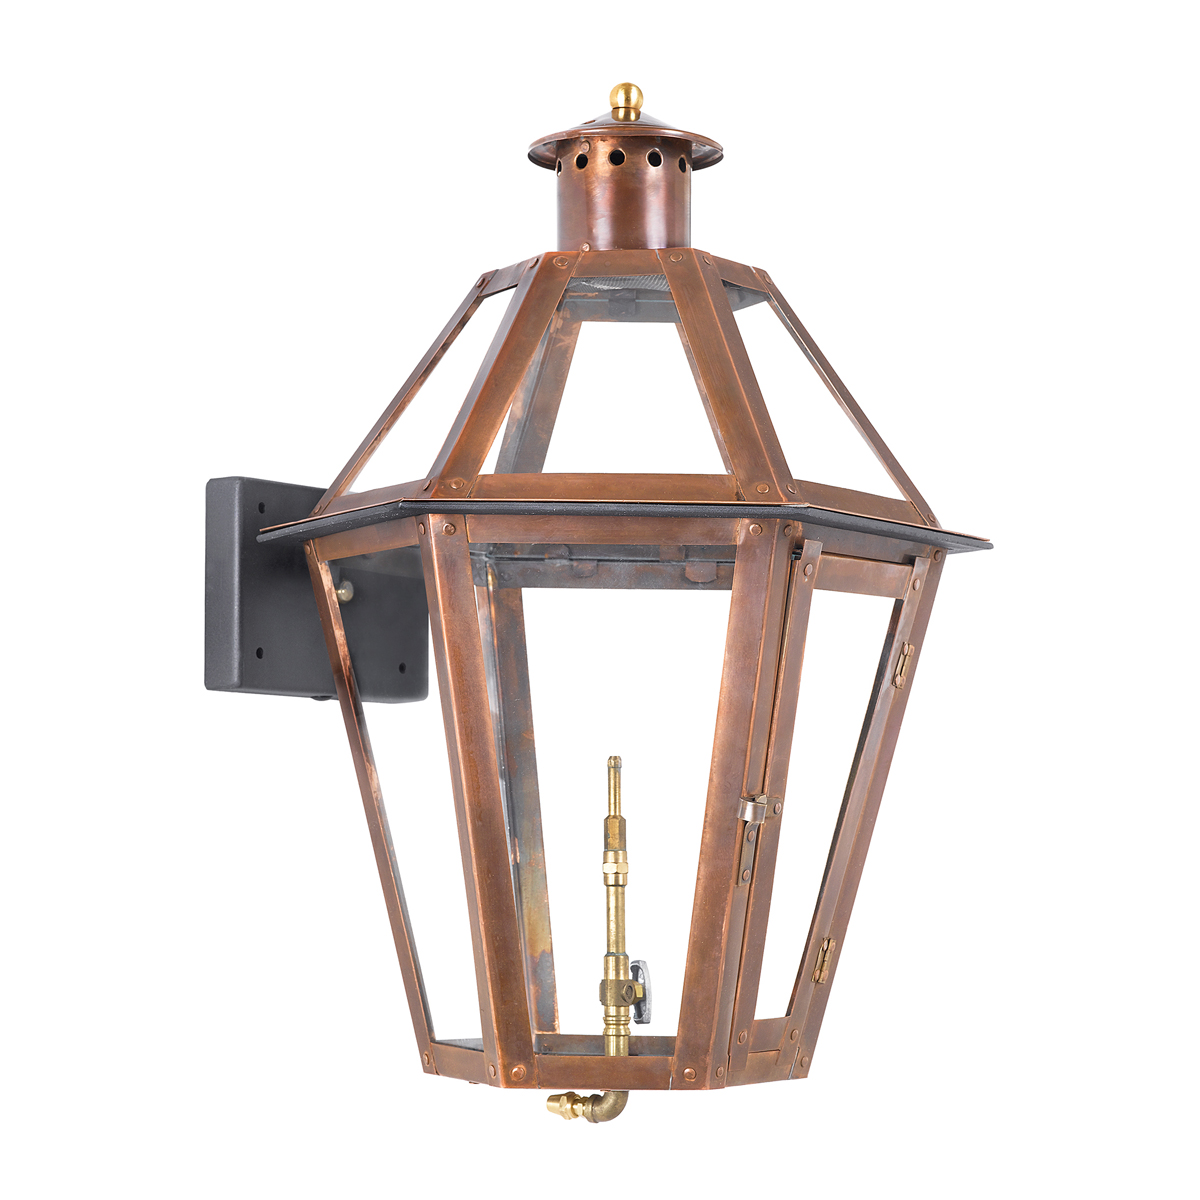 Solid copper outdoor lighting fixtures interior design solid copper outdoor lighting fixtures granpaty com arubaitofo Image collections